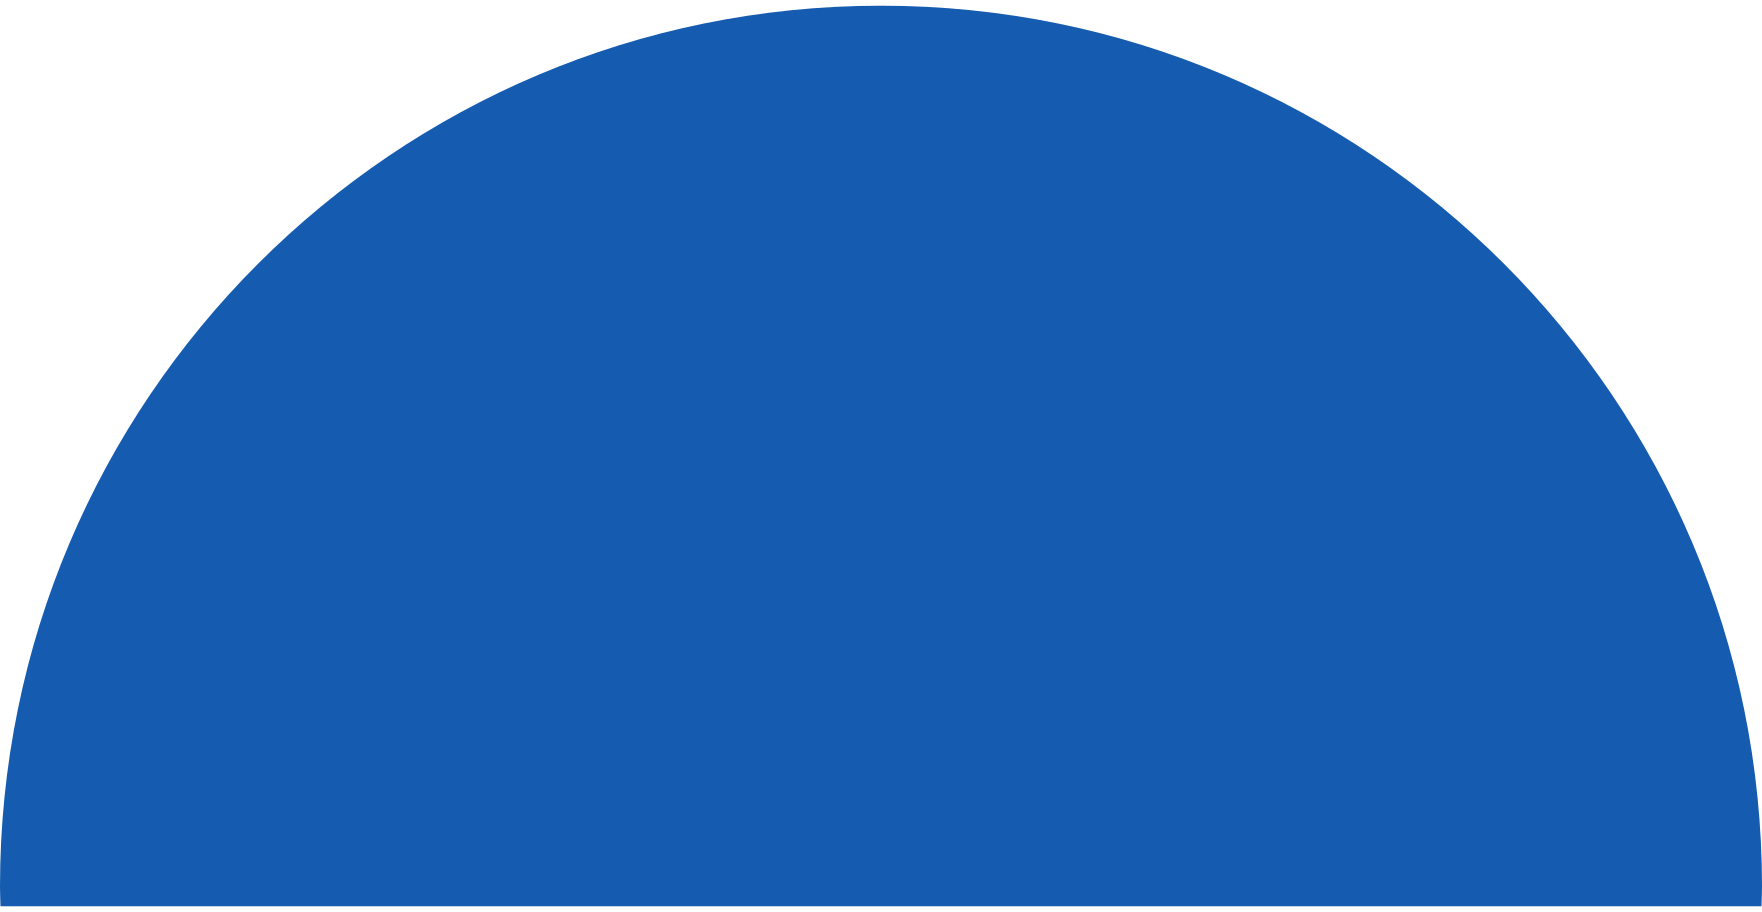 semicircle-blue Clipart illustration in PNG, SVG